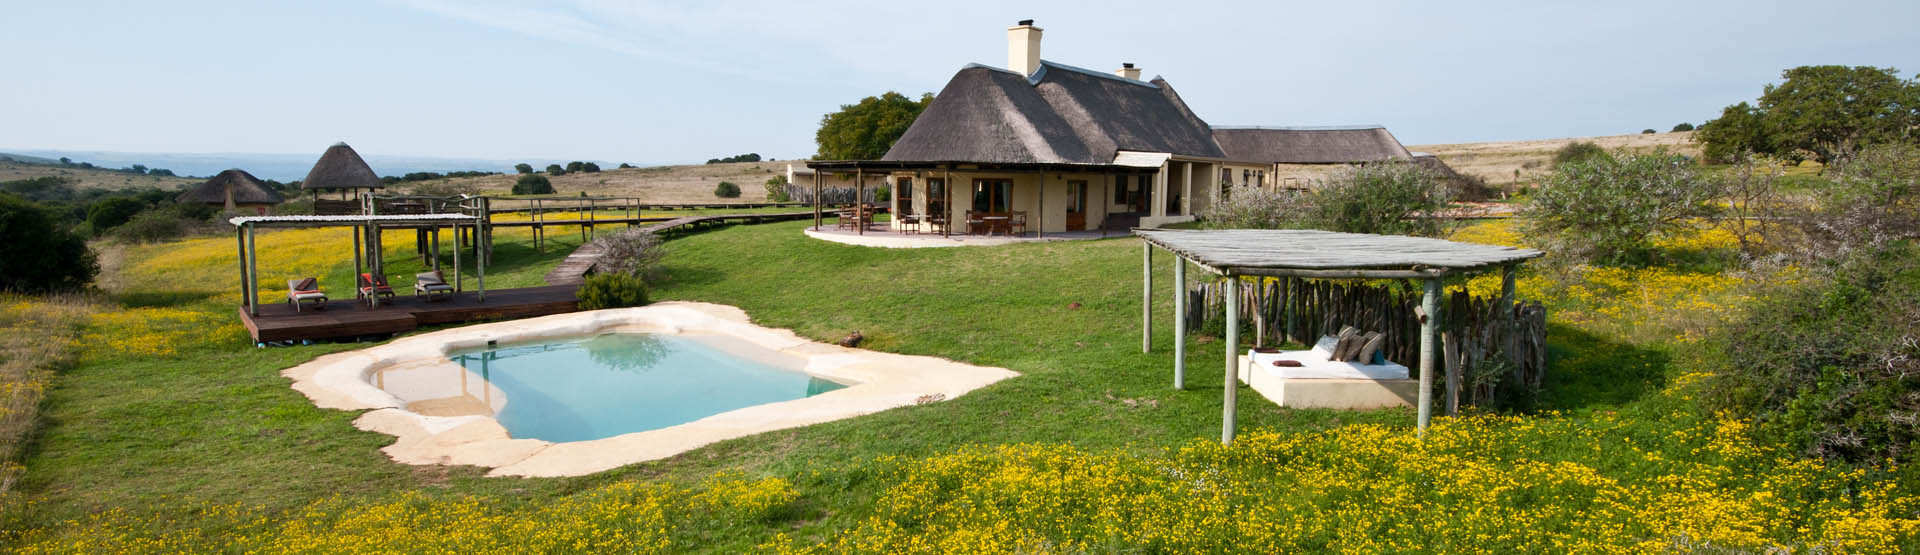 Hlosi Game Lodge Amakhala Game Reserve Eastern Cape Pool Area